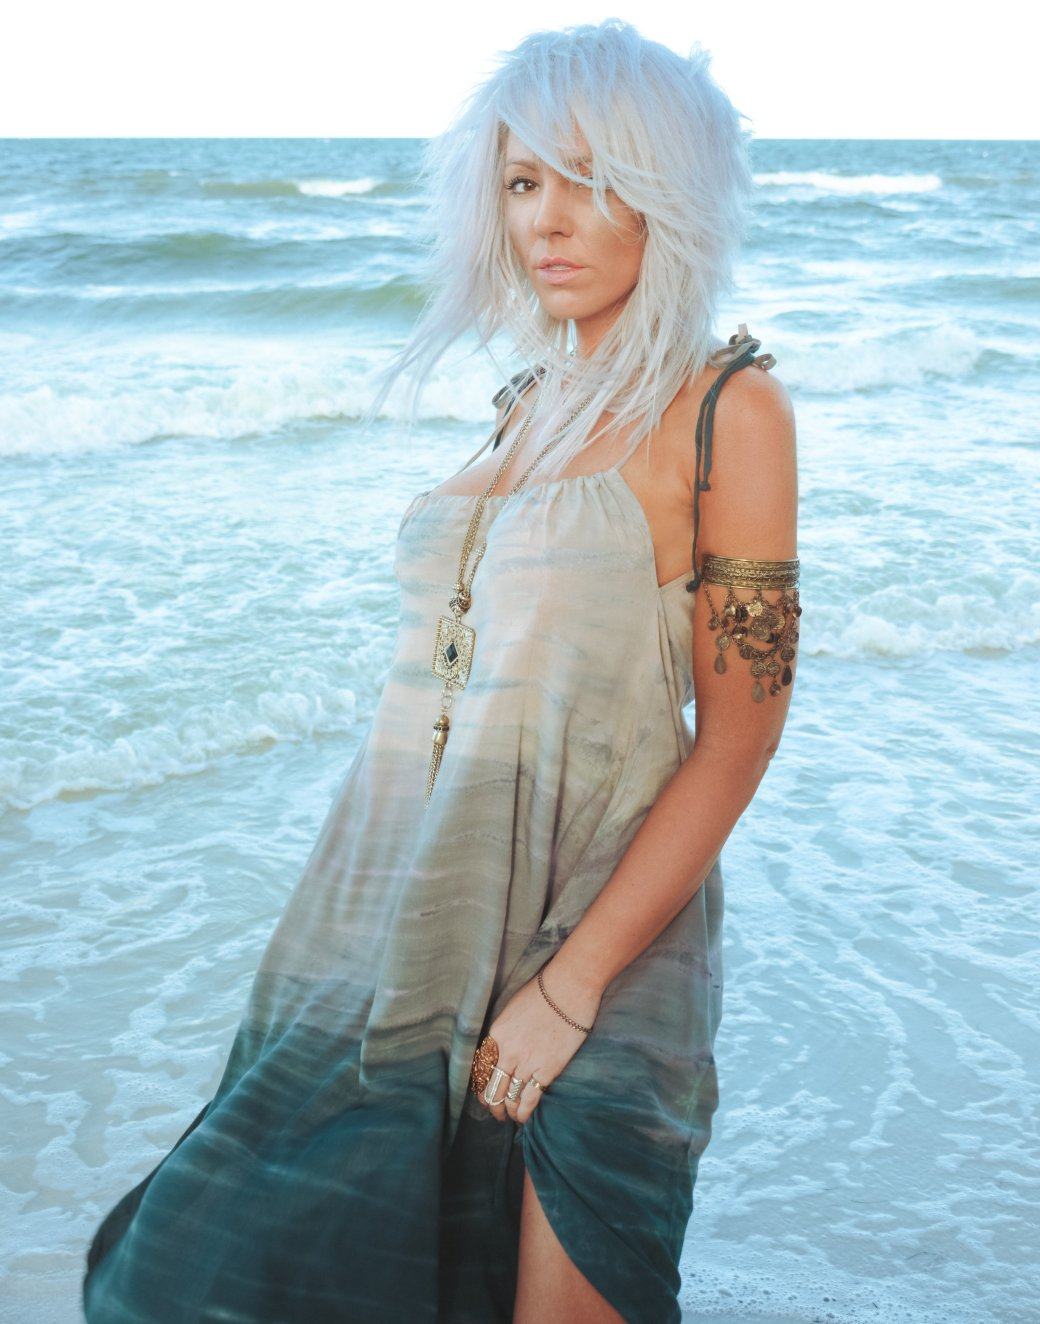 liberata dolce lorraine castle prolific quarterly bohemian fashion style beach boho editorial fall winter 2016 blog blogger ethereal beach photoshoot